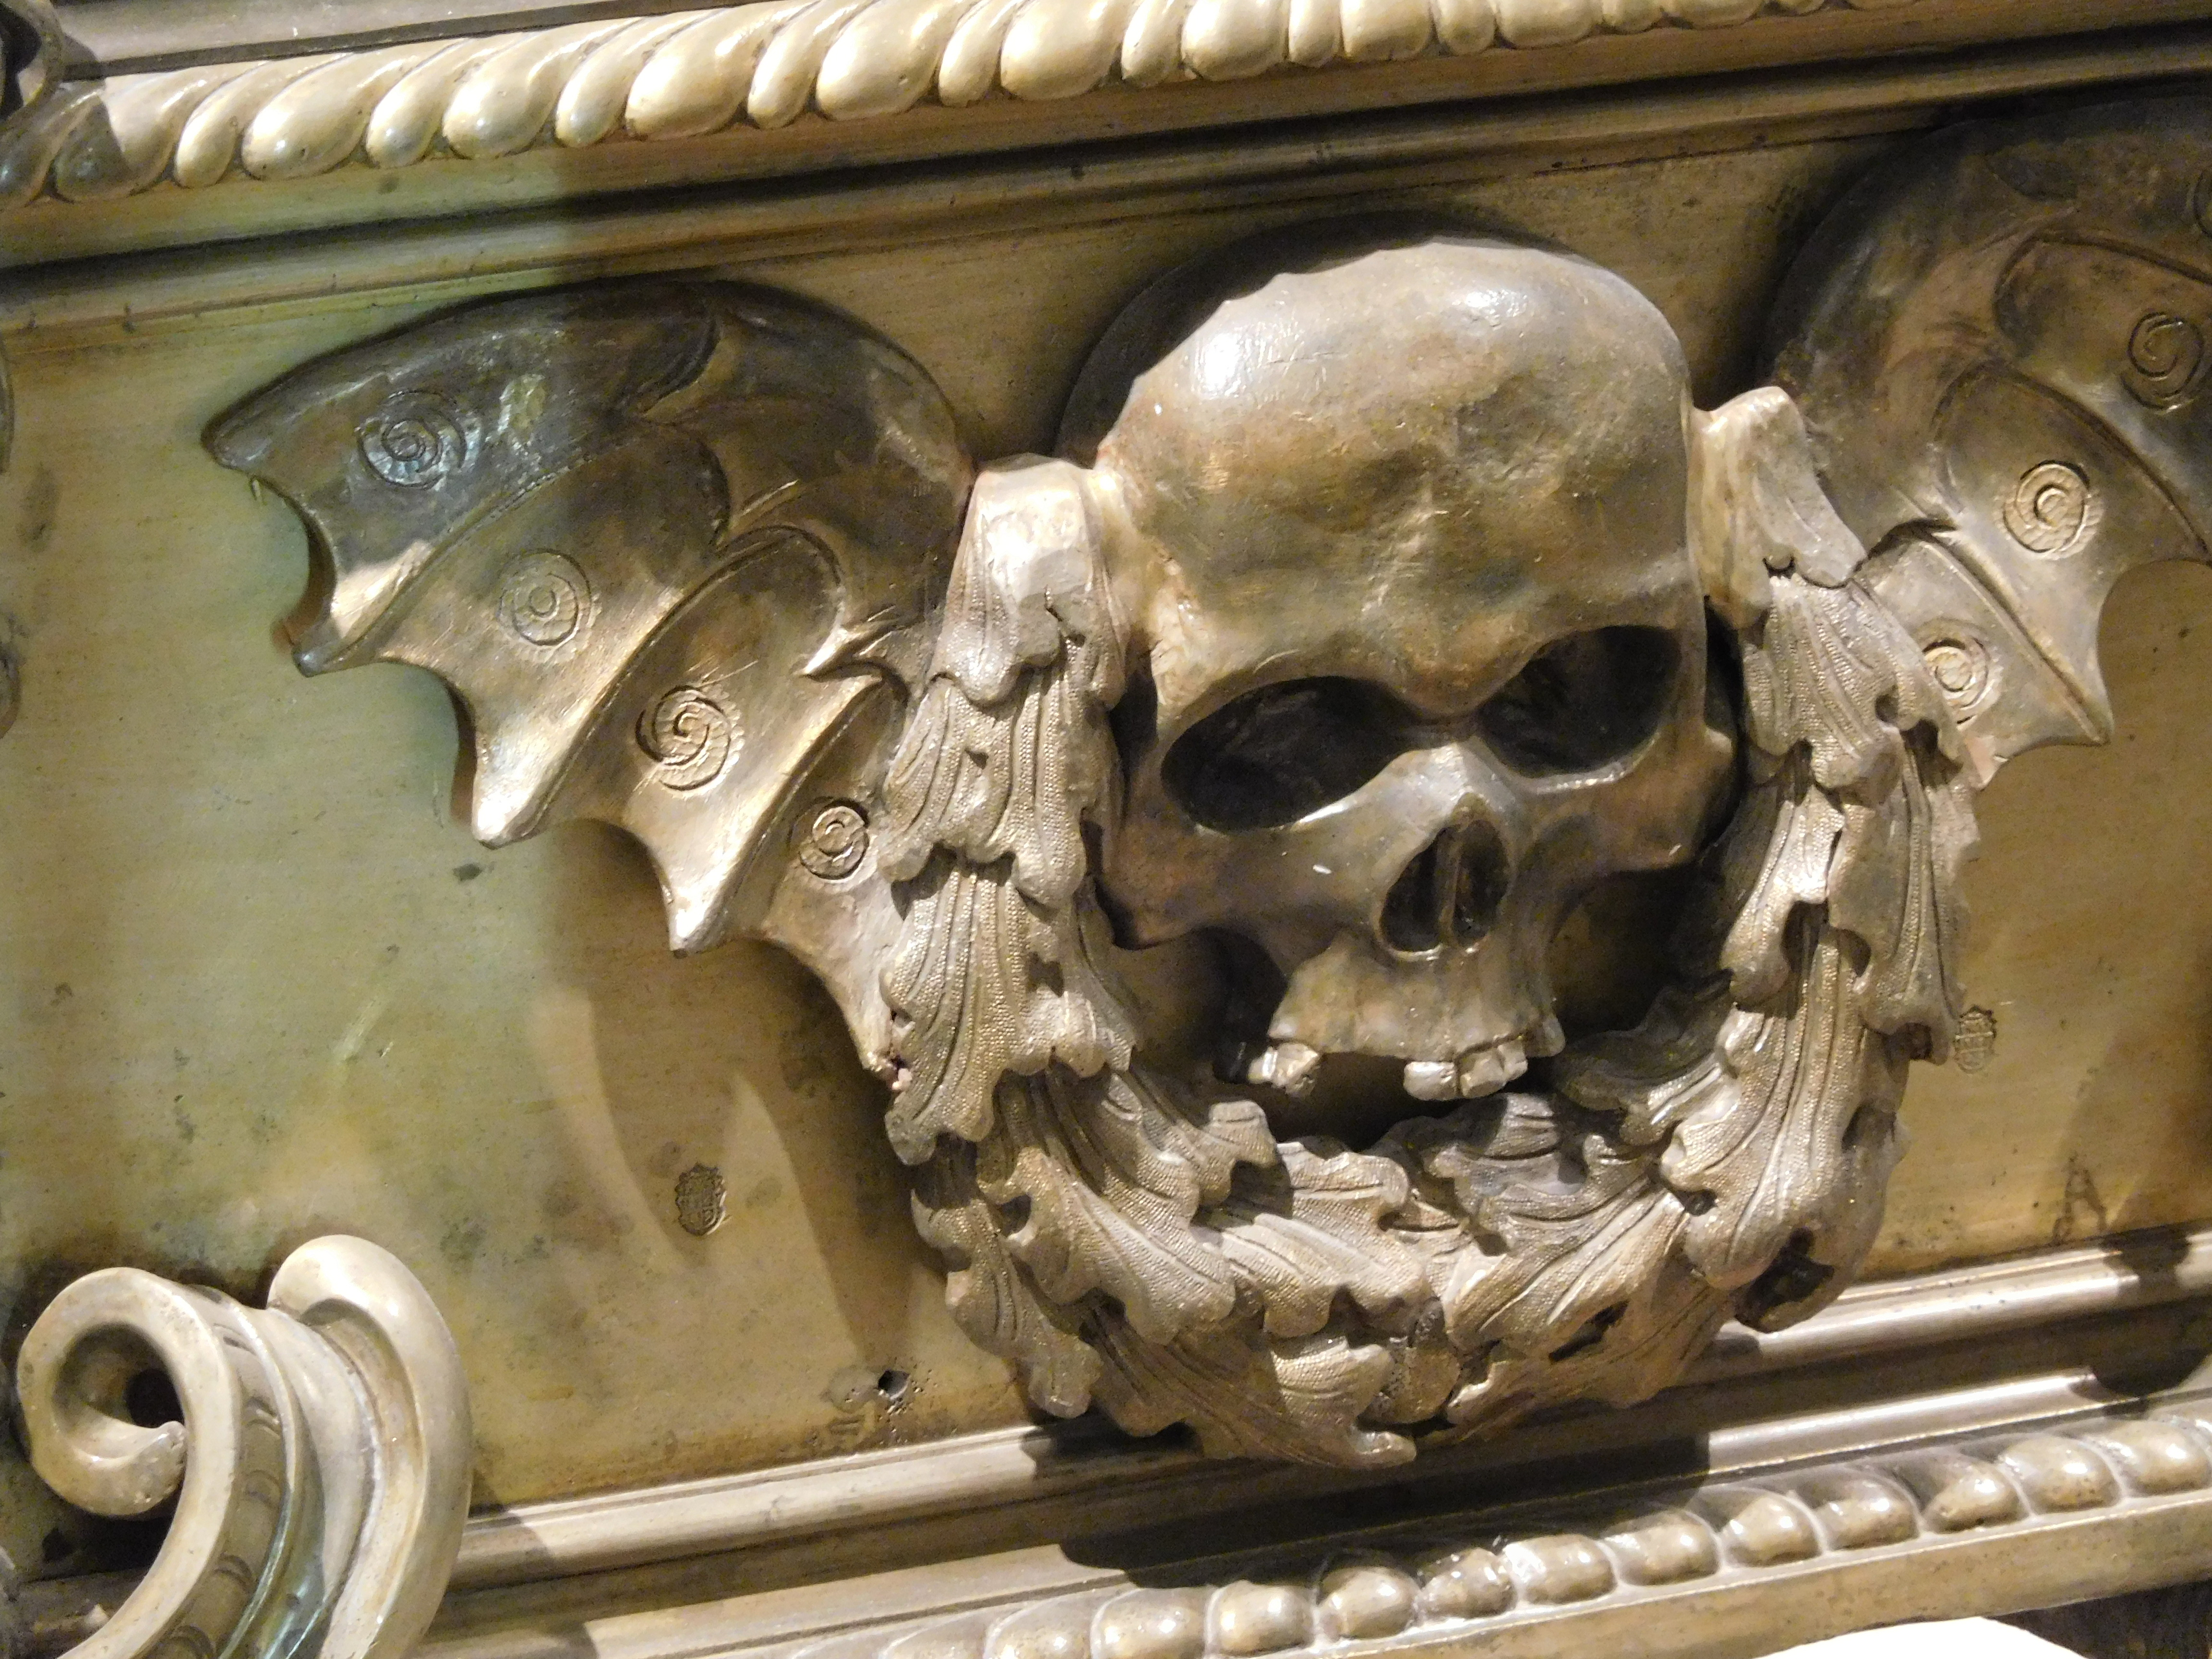 Empire and skull symbols total war forums especially the habsburg dynasty developed a liking for maccabre skull herraldry and grim reaper depictions could be found all over vienna after the city biocorpaavc Images